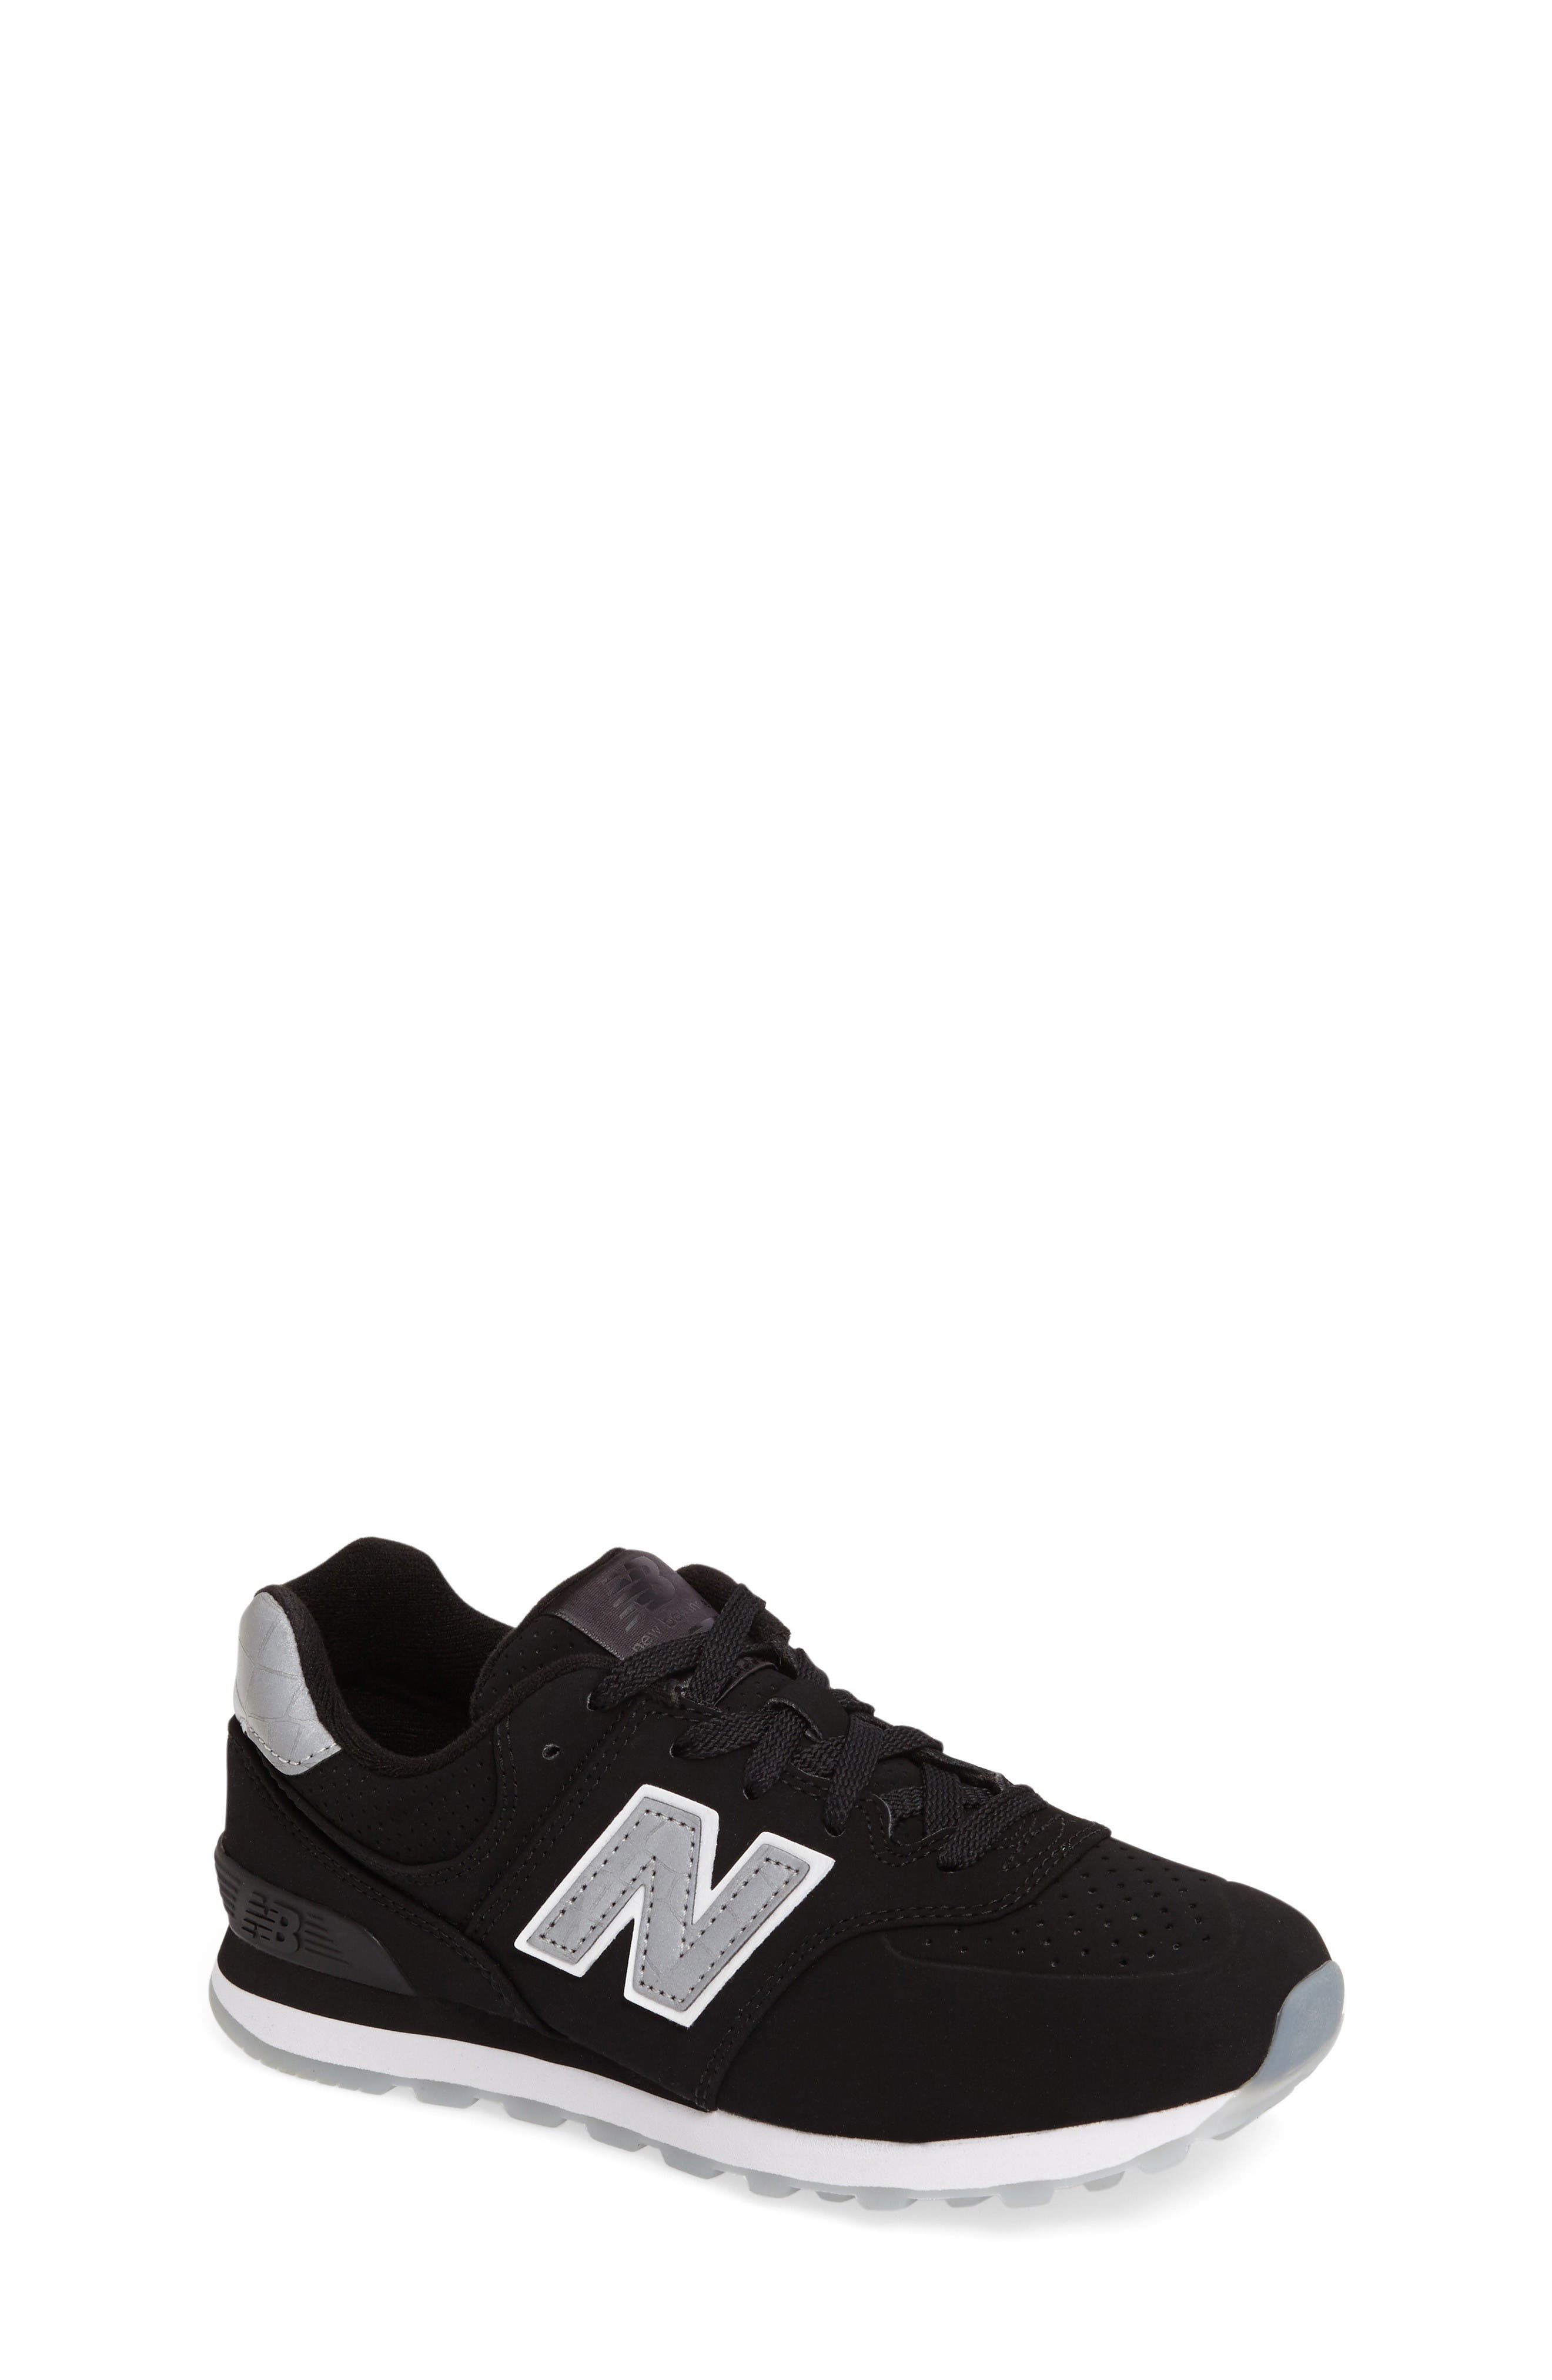 Alternate Image 1 Selected - New Balance 574 Core Plus Sneaker (Baby, Walker, Toddler, Little Kid, Big Kid)